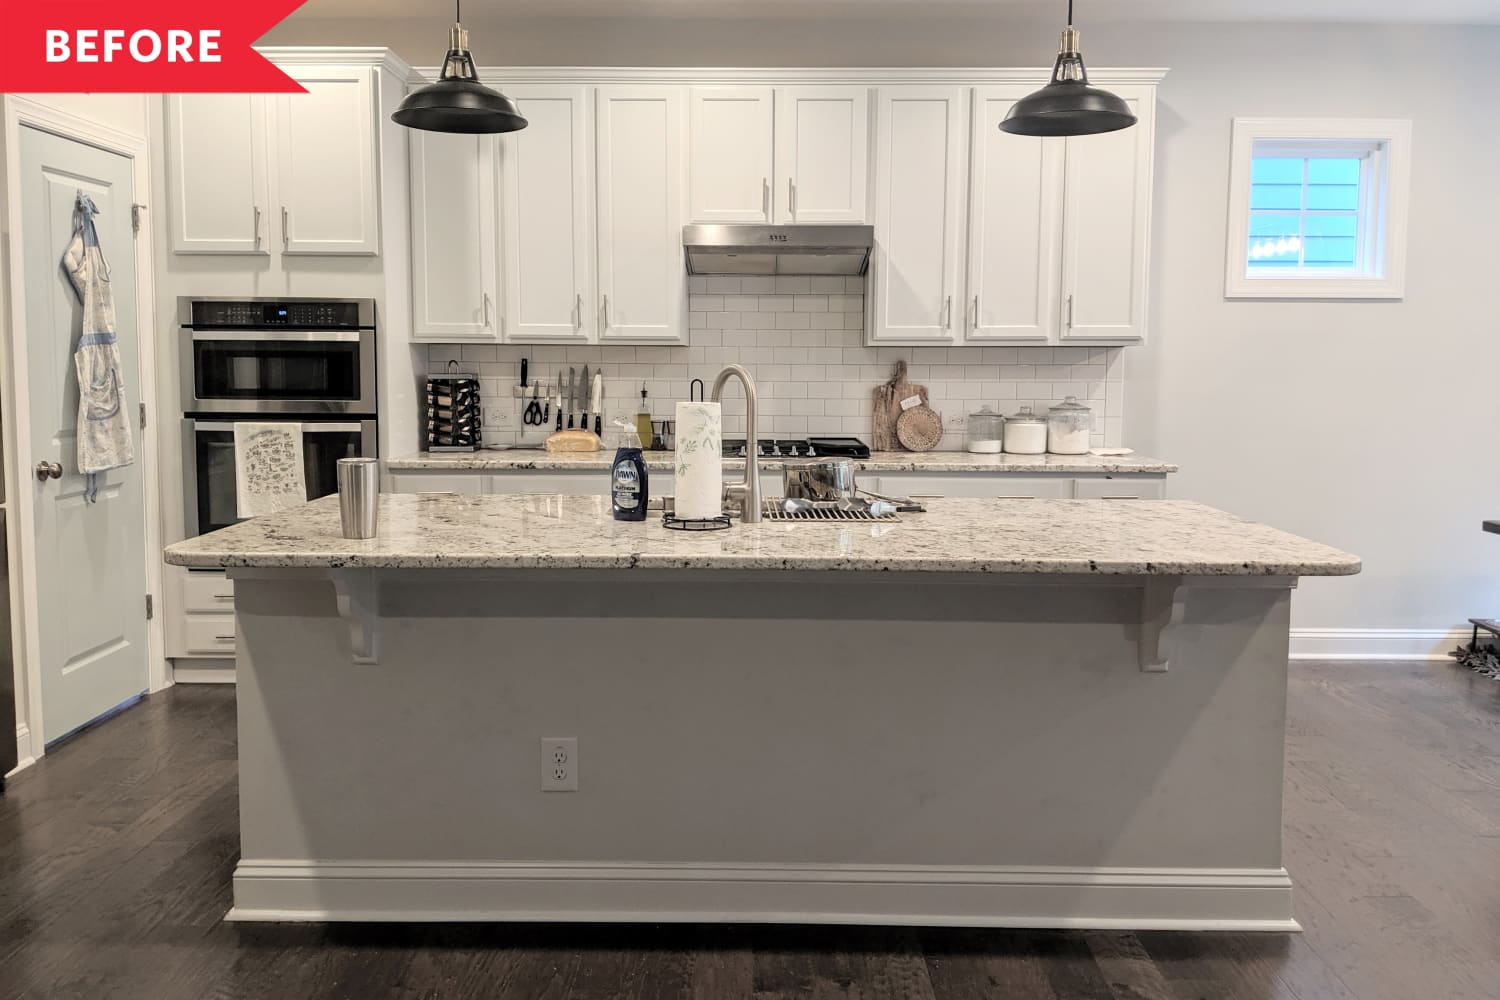 Before & After: This Kitchen Island Got a Stylish $50 Makeover in Just One Day